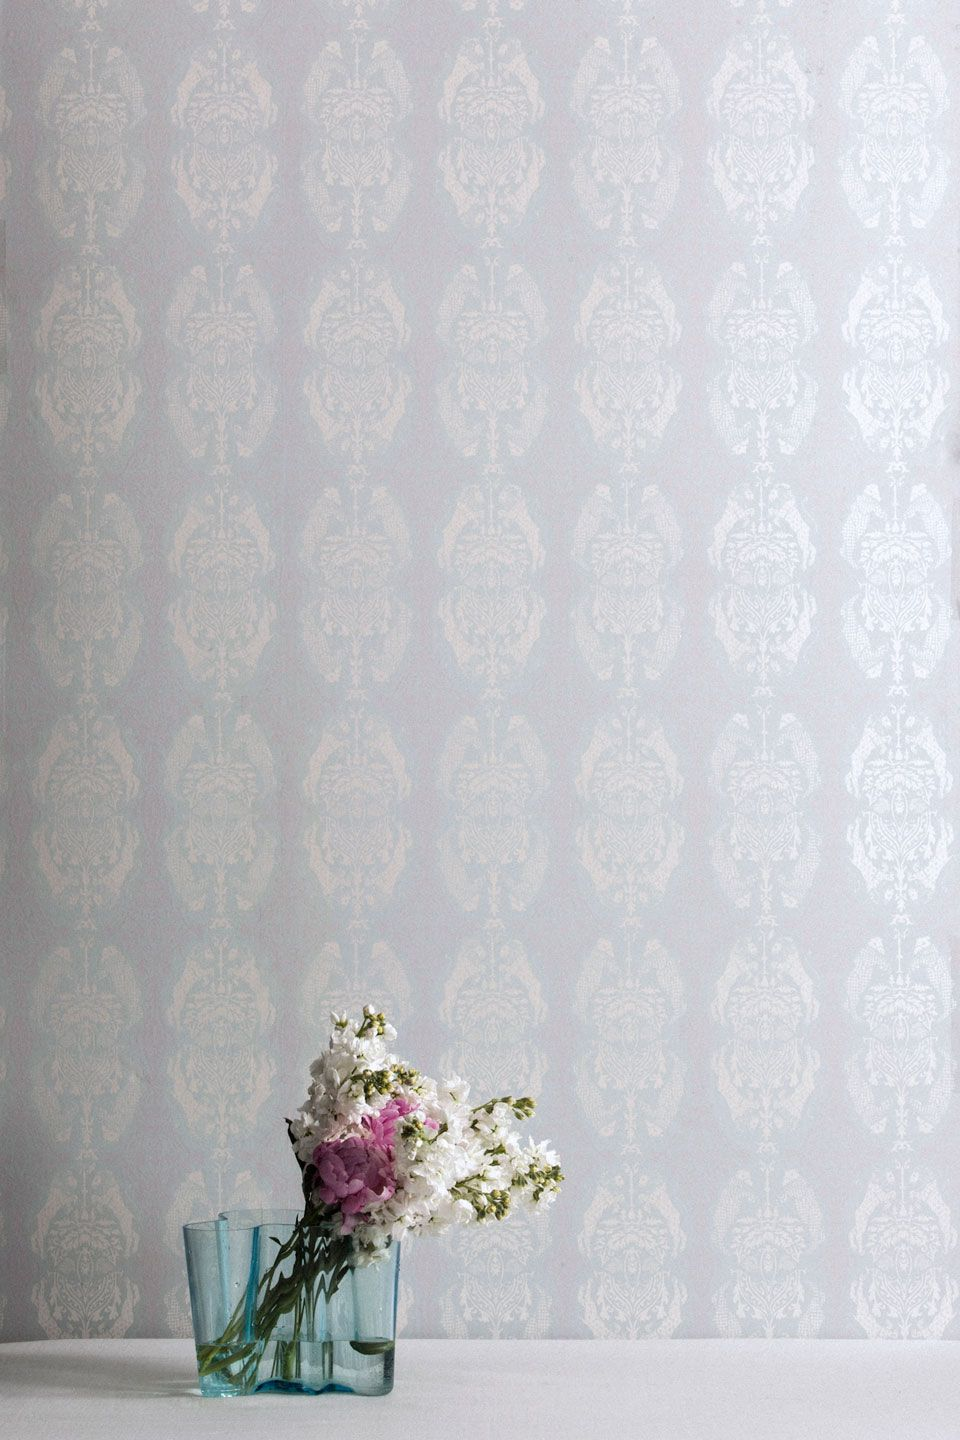 Beastly Guardians in Swan is a hand printed wallpaper that is printed with pearl, light dusty pink, and light blue inks.